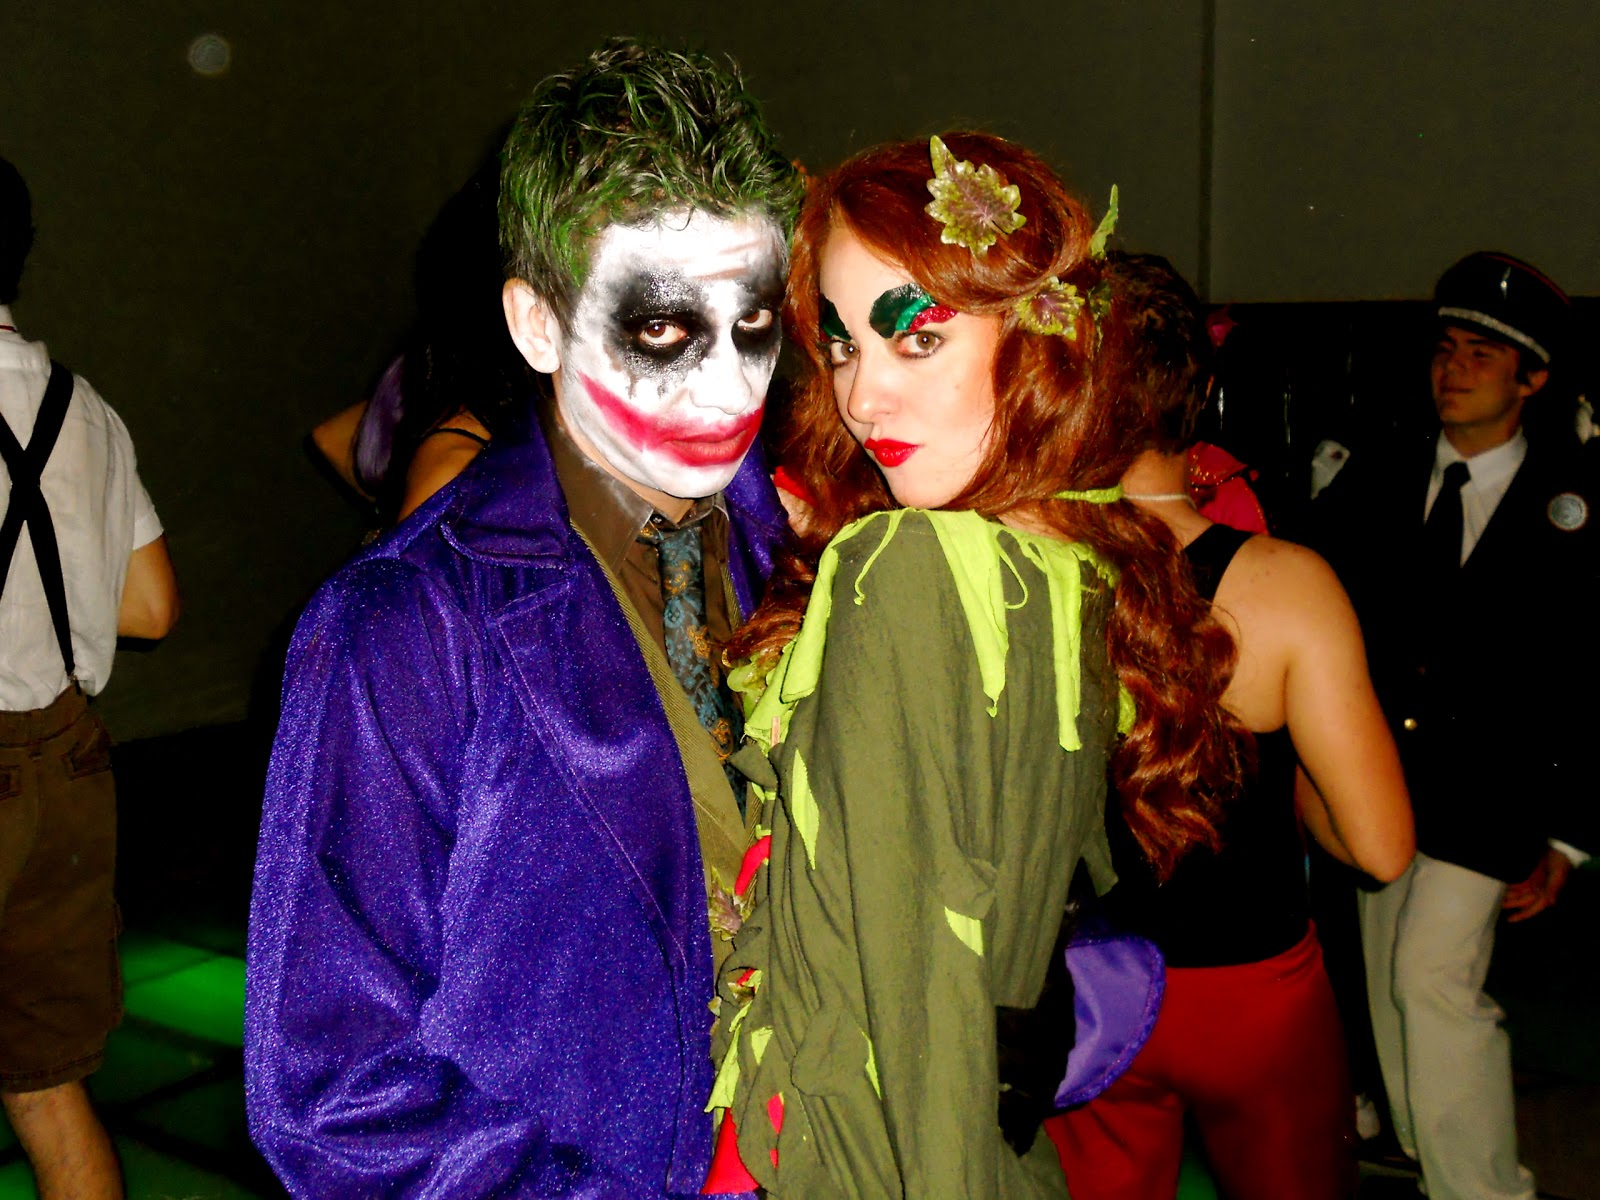 ivy and the joker